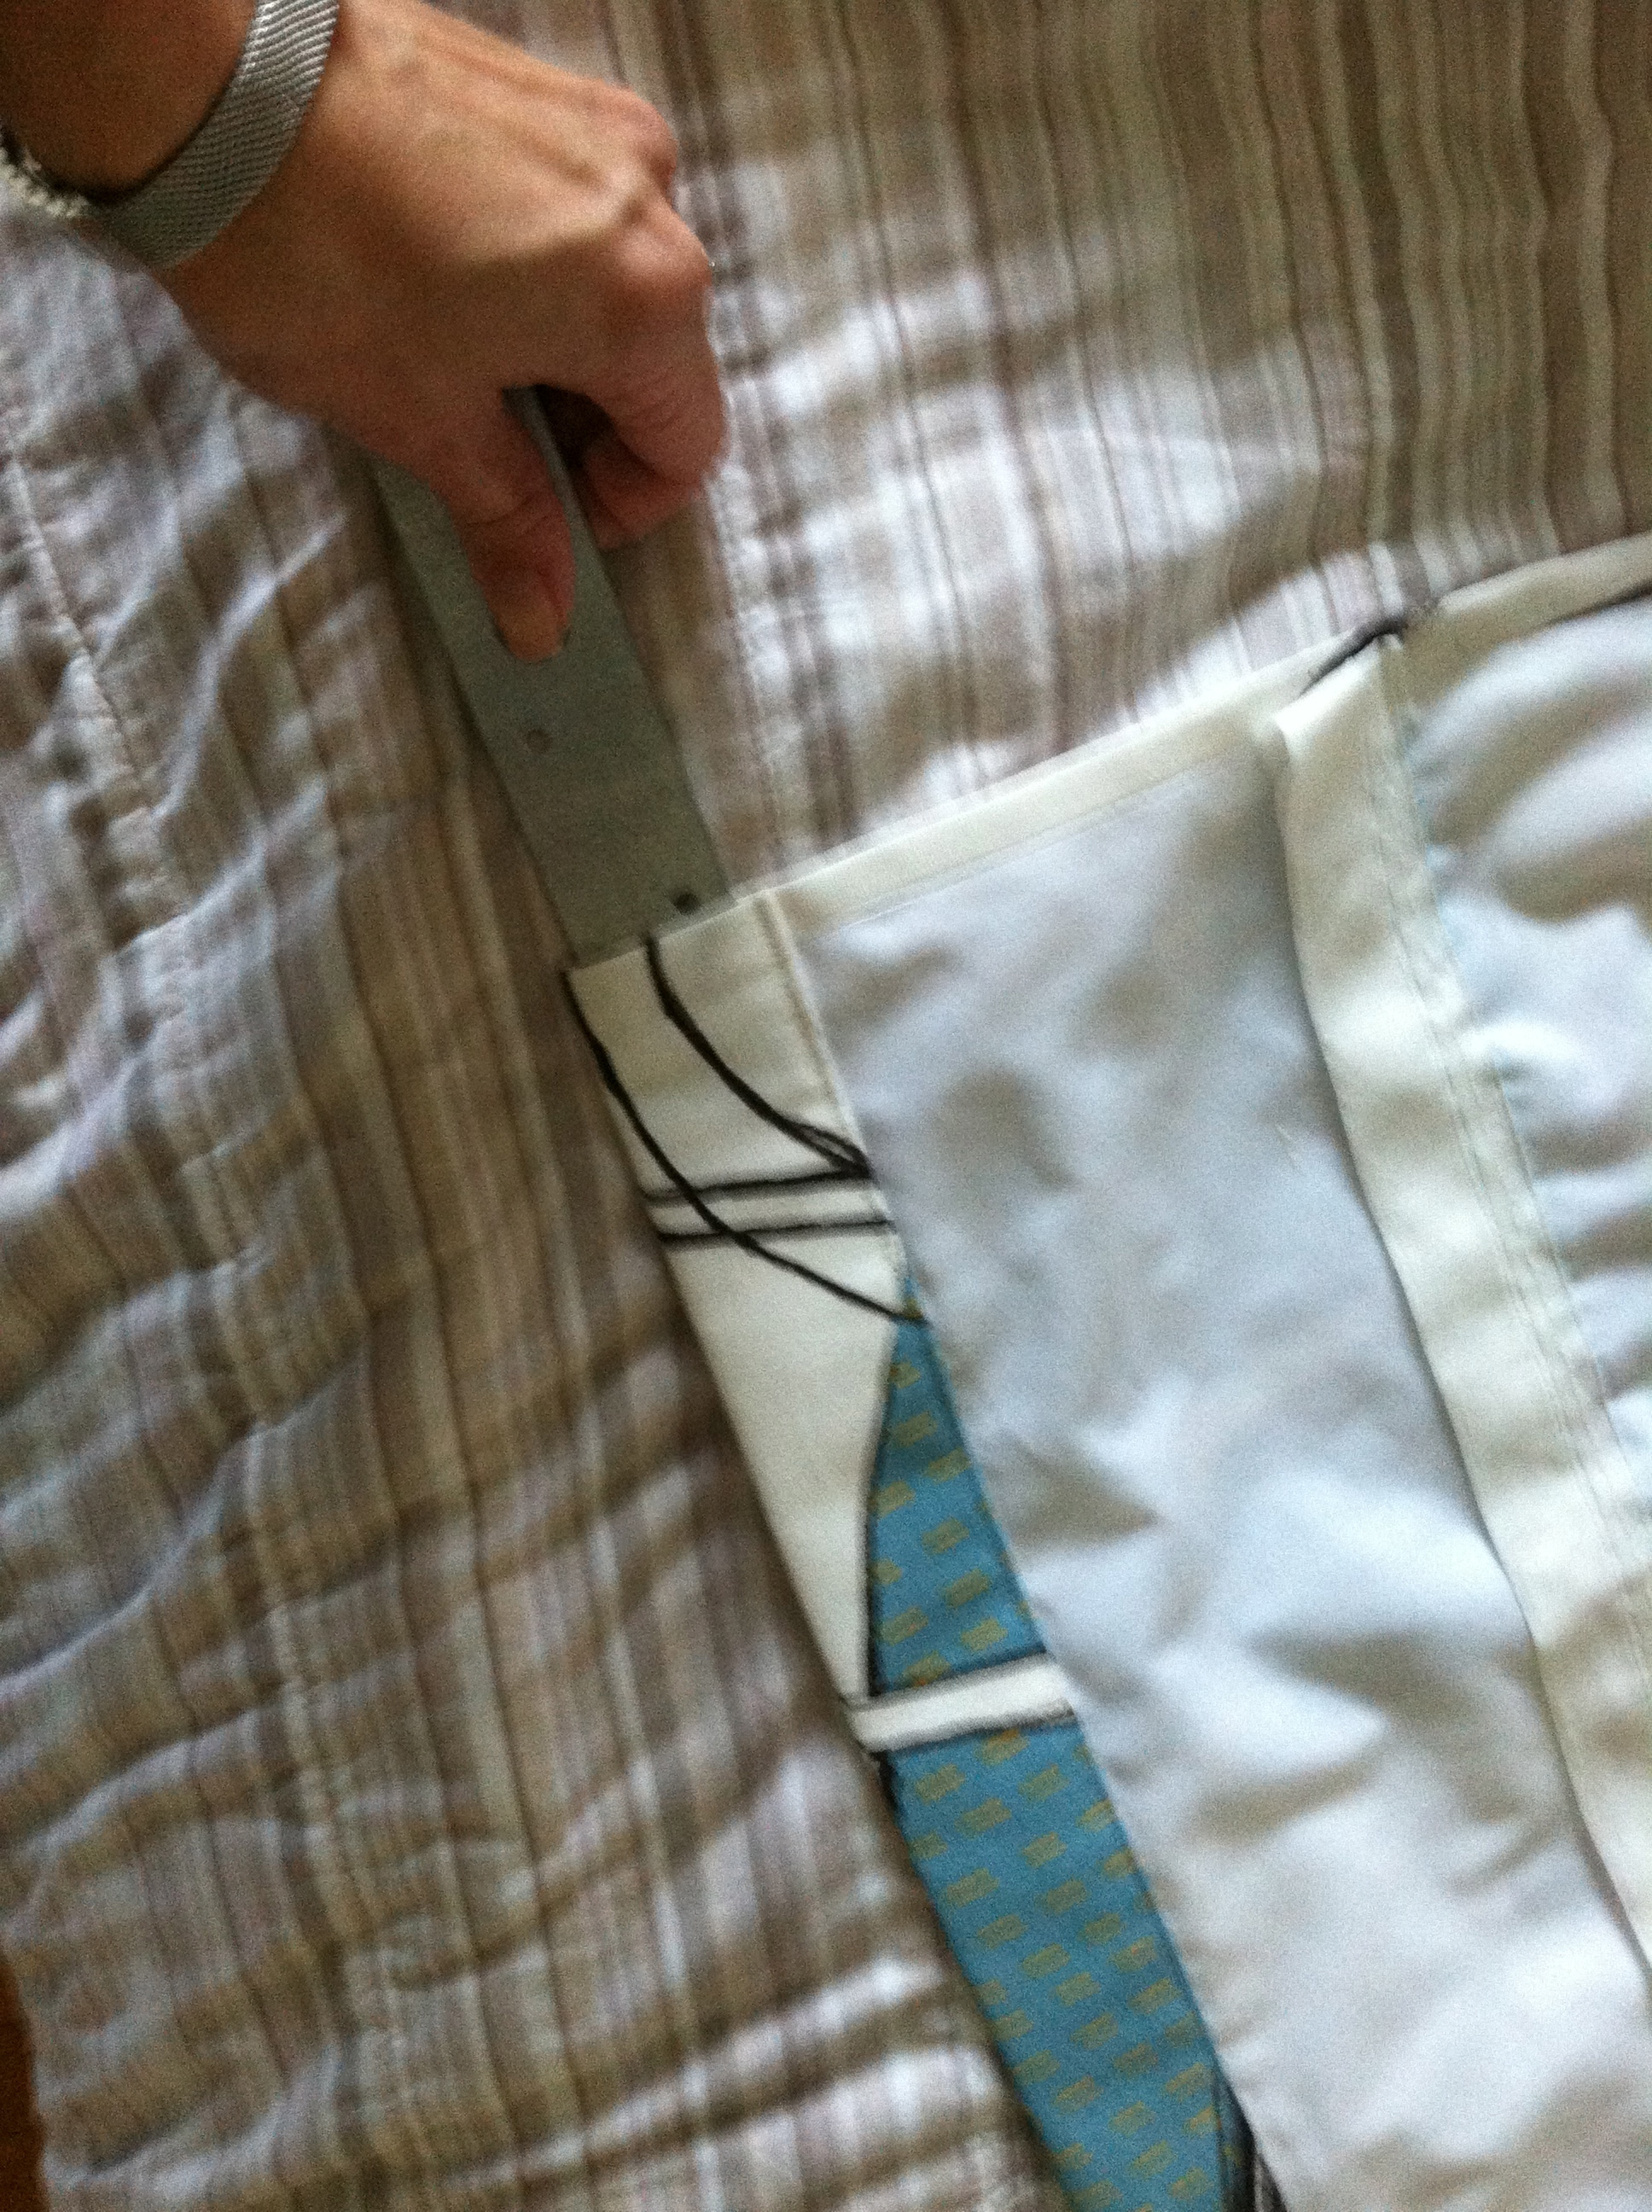 Insert Weight Rod into hem casing and sew shut